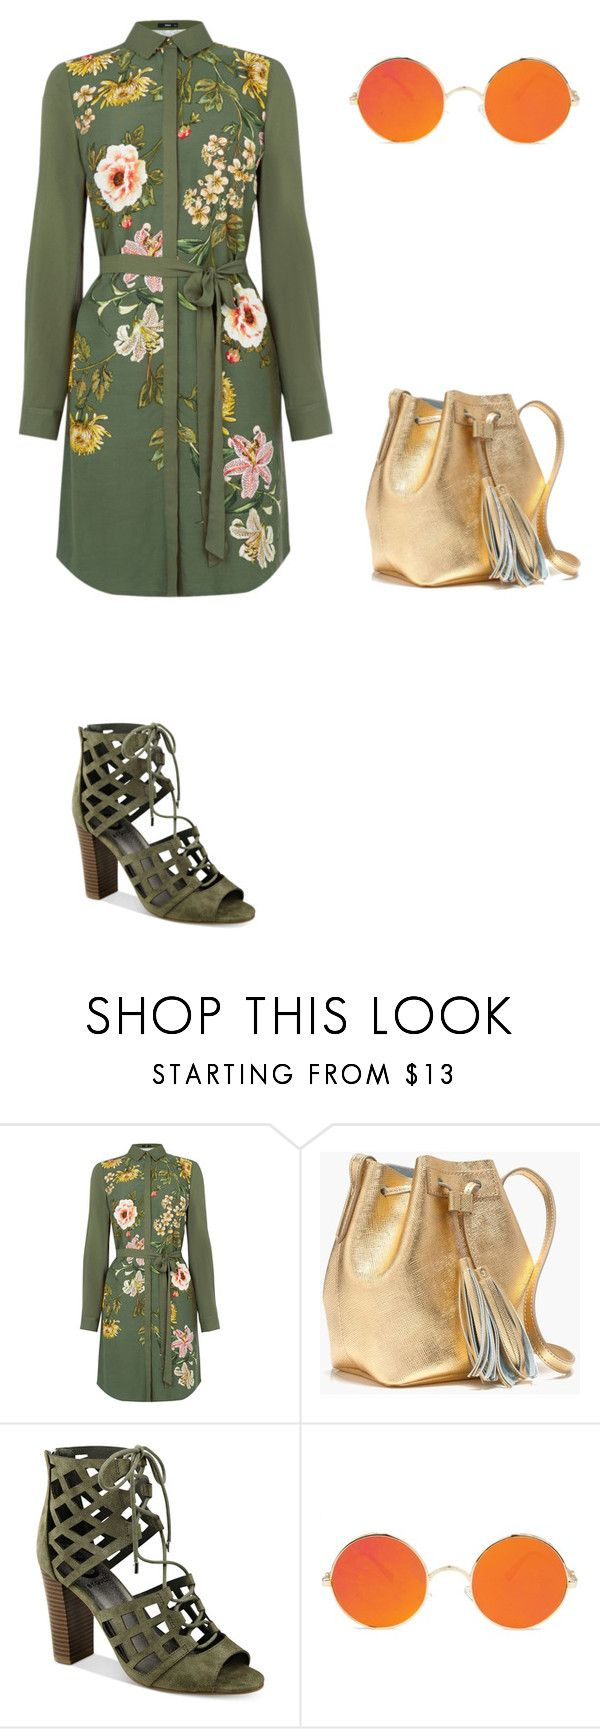 """Bez tytułu #1813"" by tariisilra ❤ liked on Polyvore featuring Oasis, J.Crew and G by Guess"